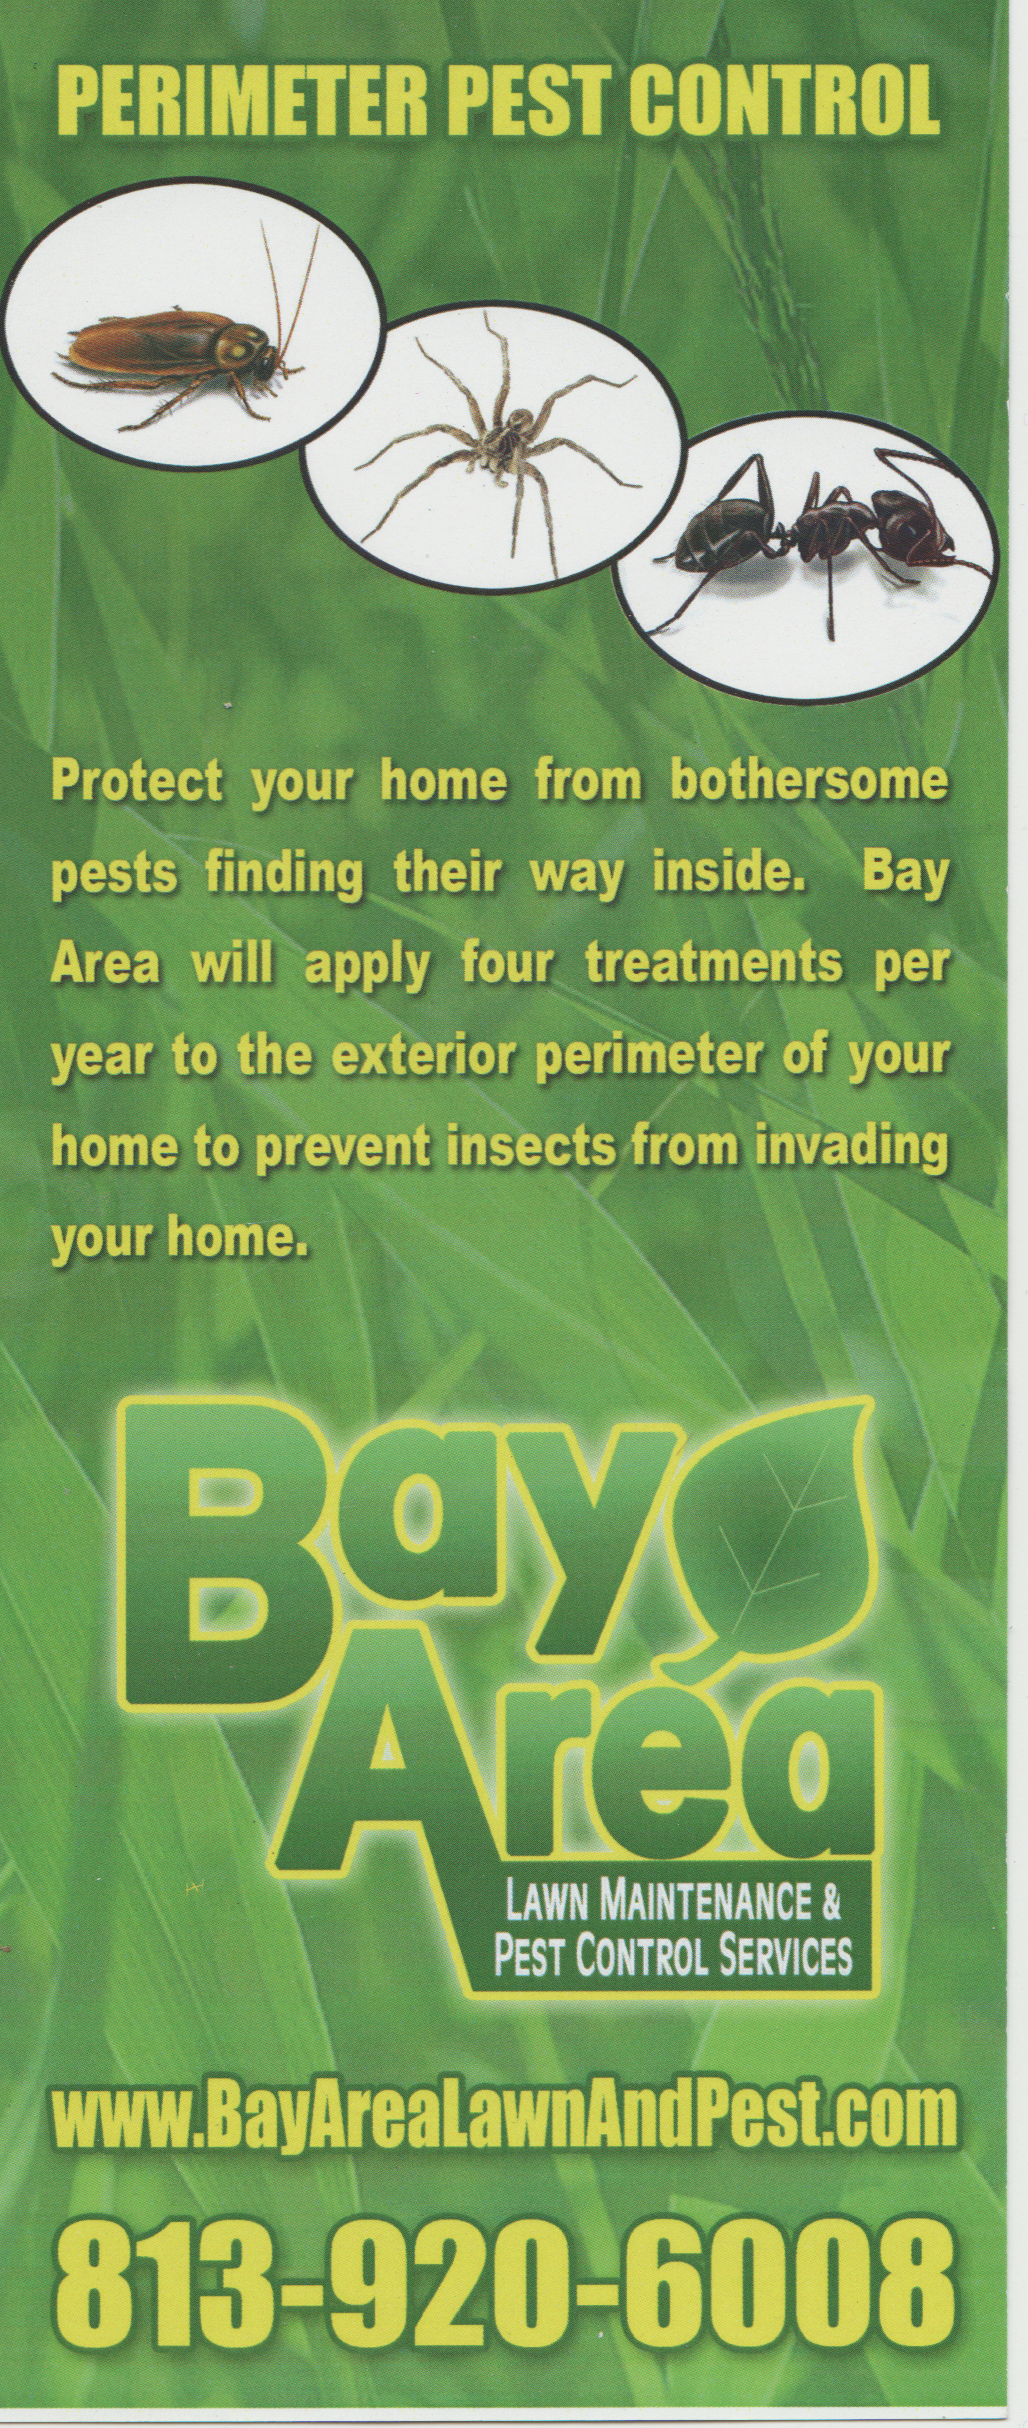 Bay Area Lawn And Pest Control Bay Area Lawn Amp Pest Control